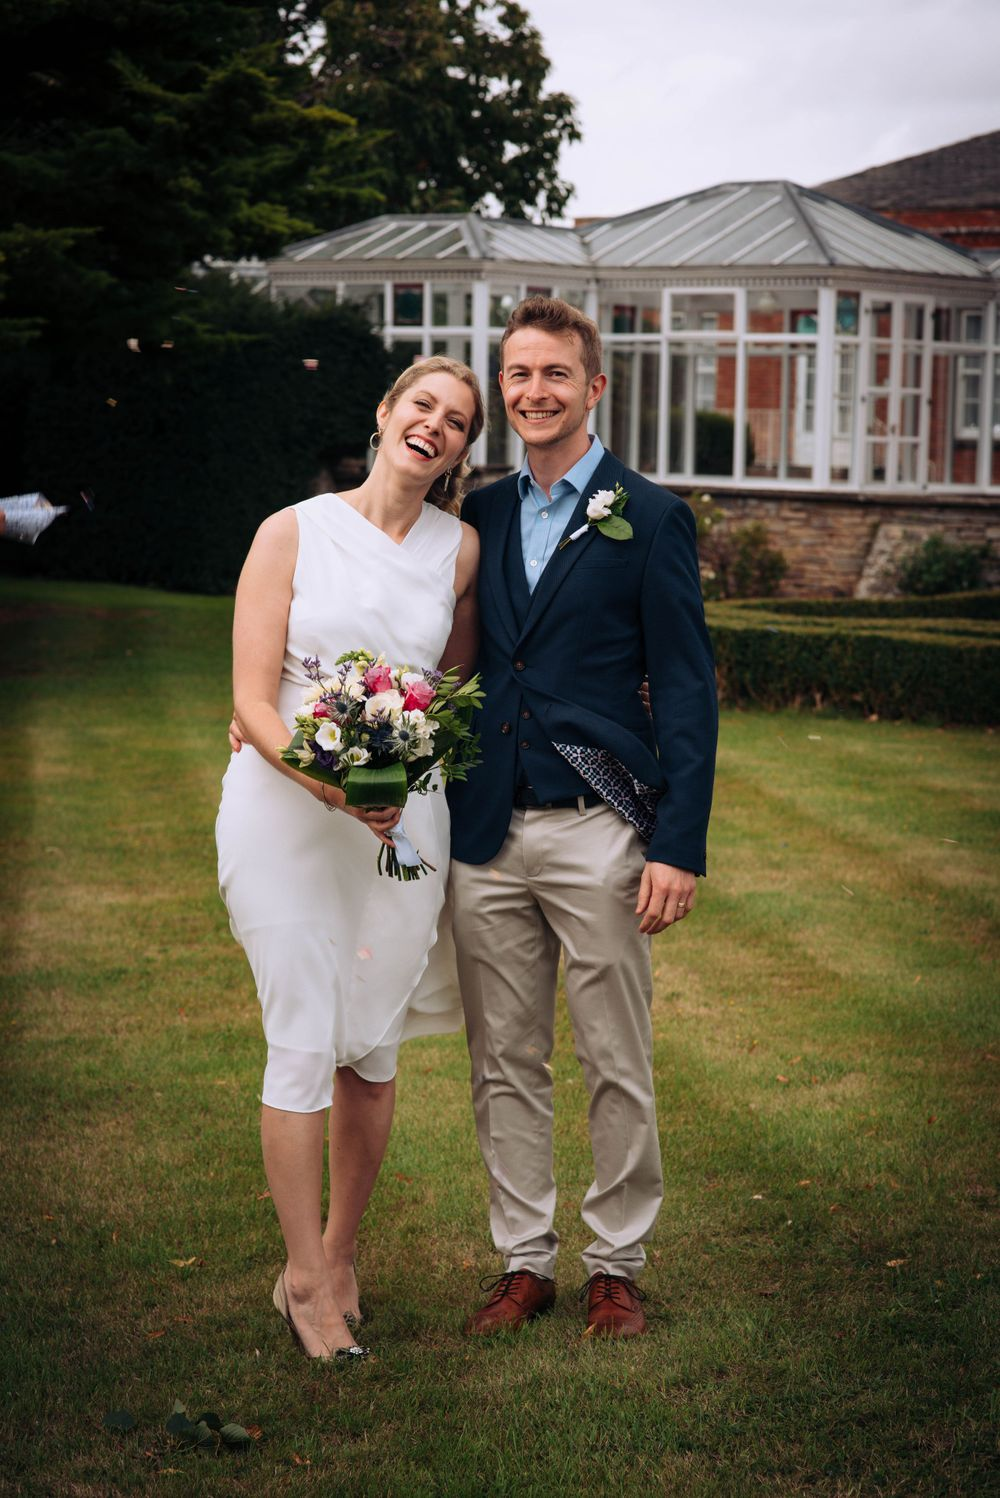 Pukrup Hall wedding by Zara Davis Photography, Gloucestershire posing bride and groom outside